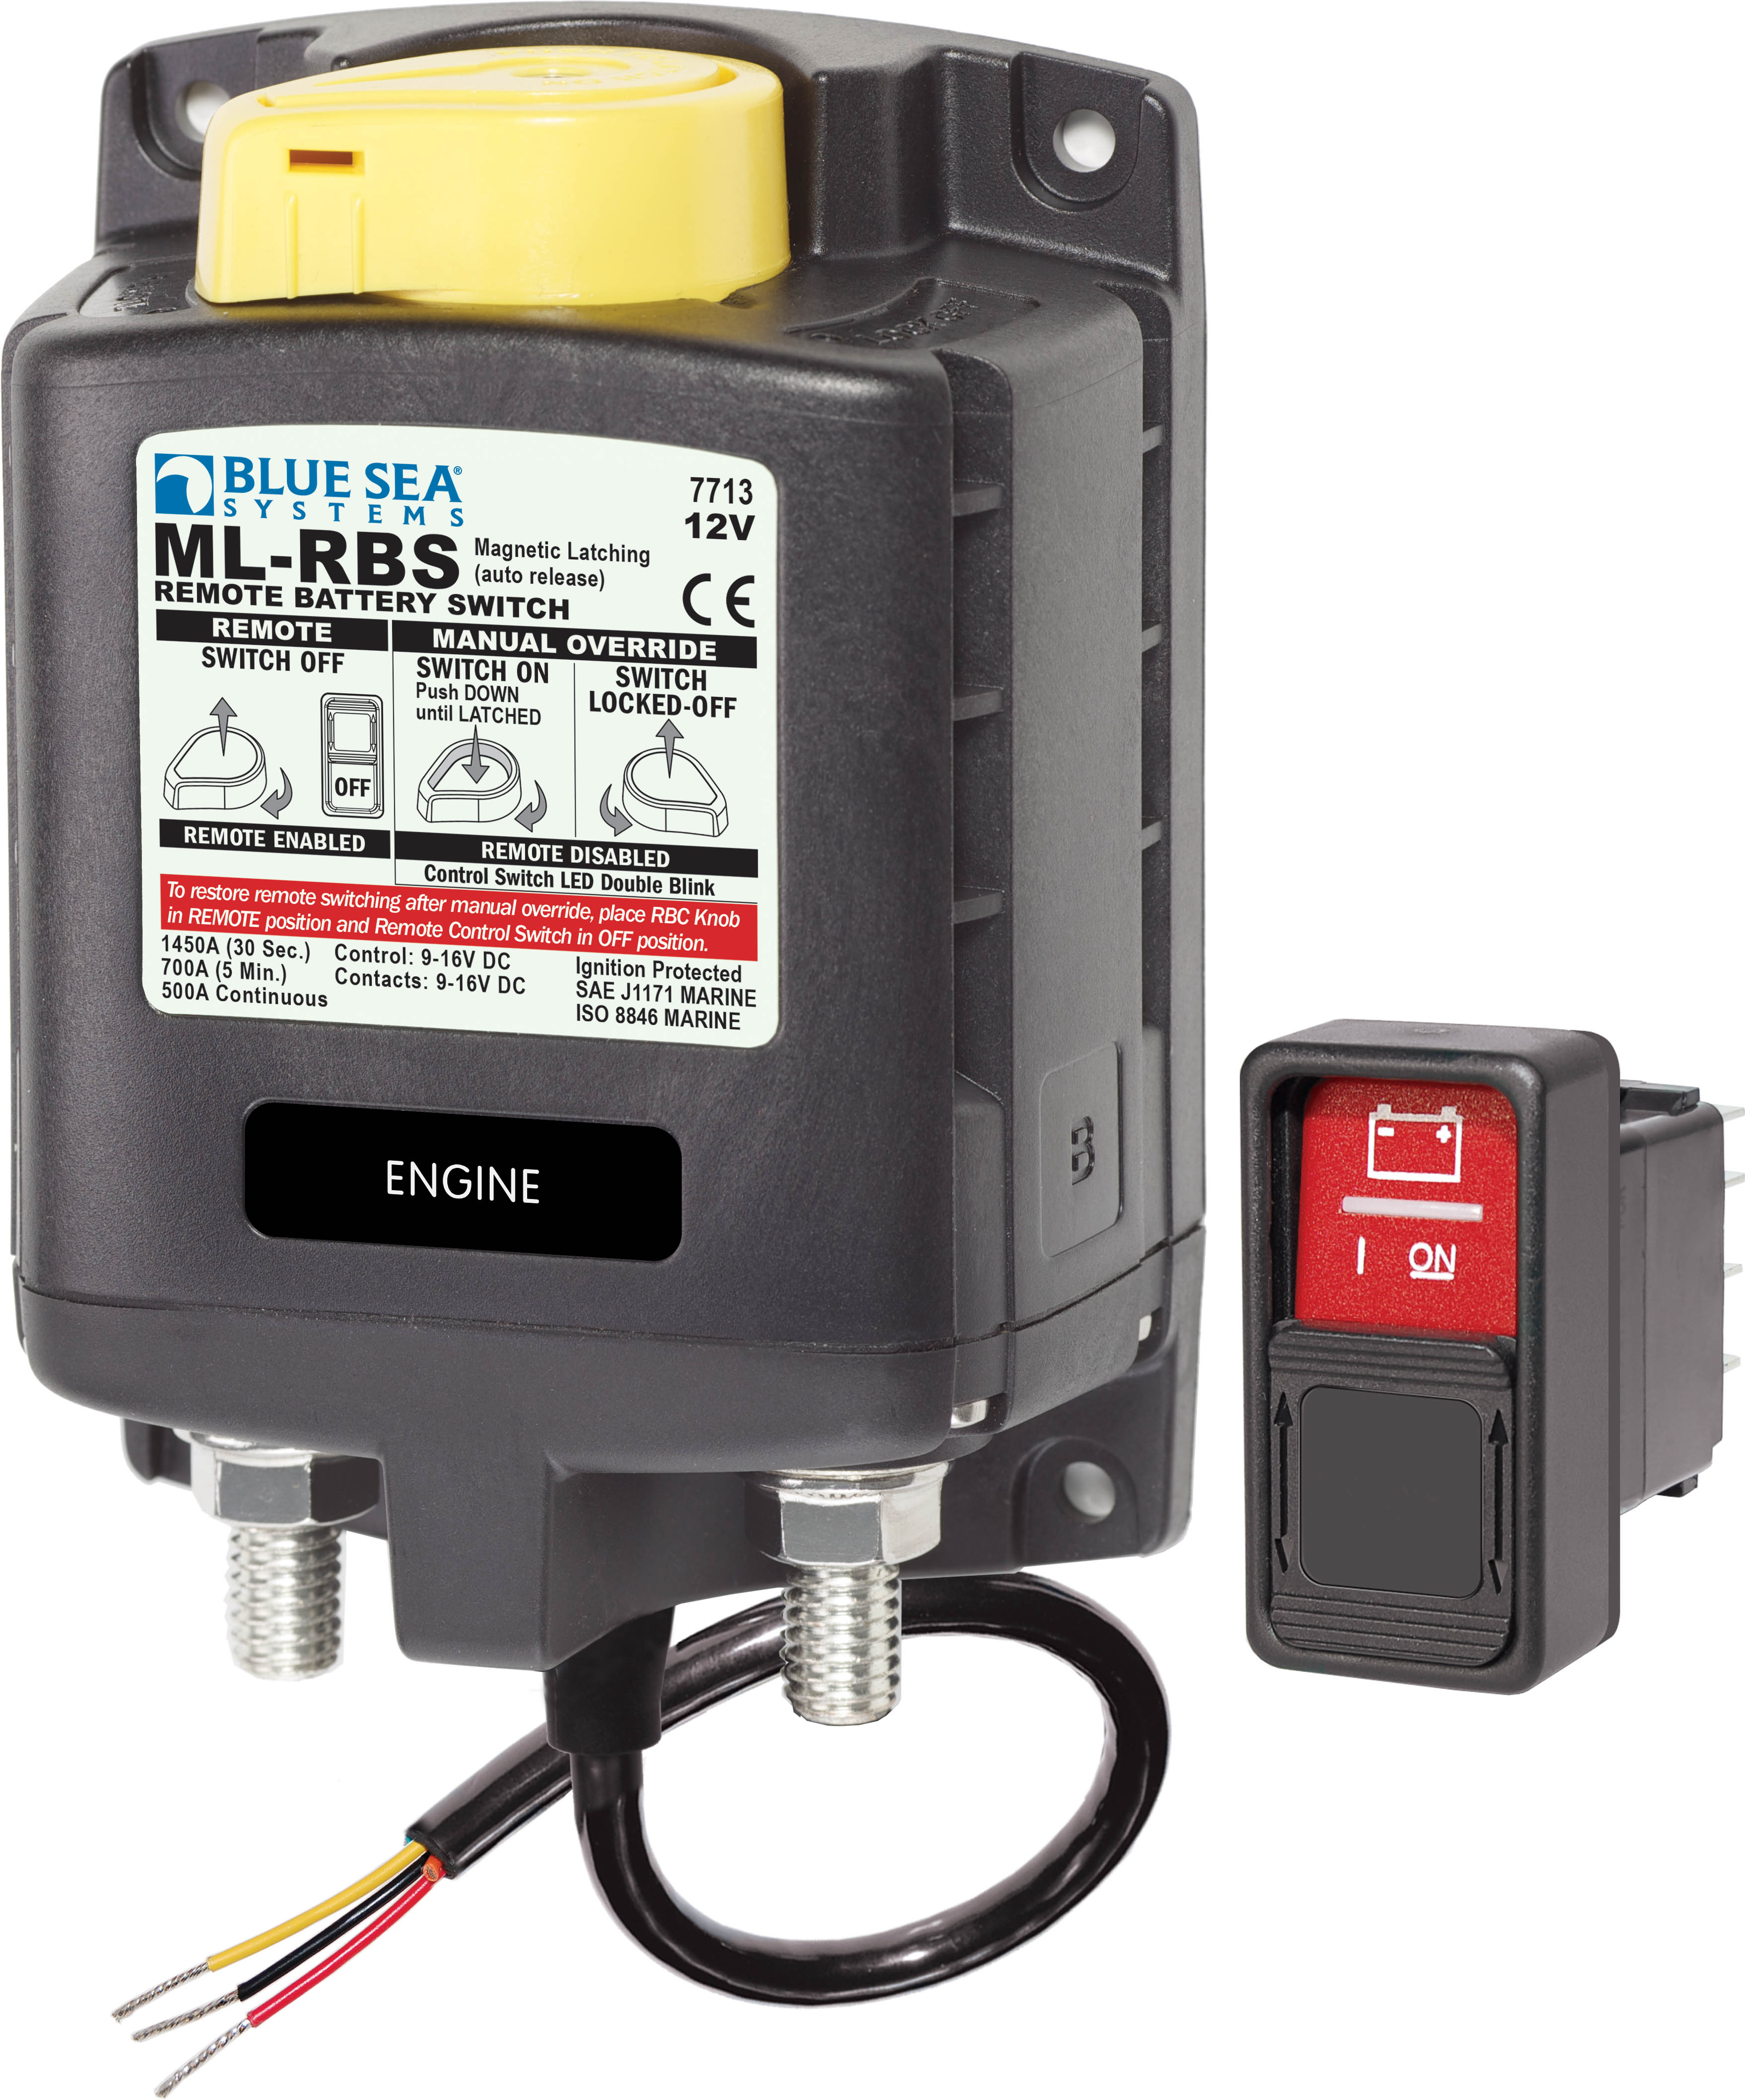 MLRBS Remote Battery Switch with Manual Control Auto